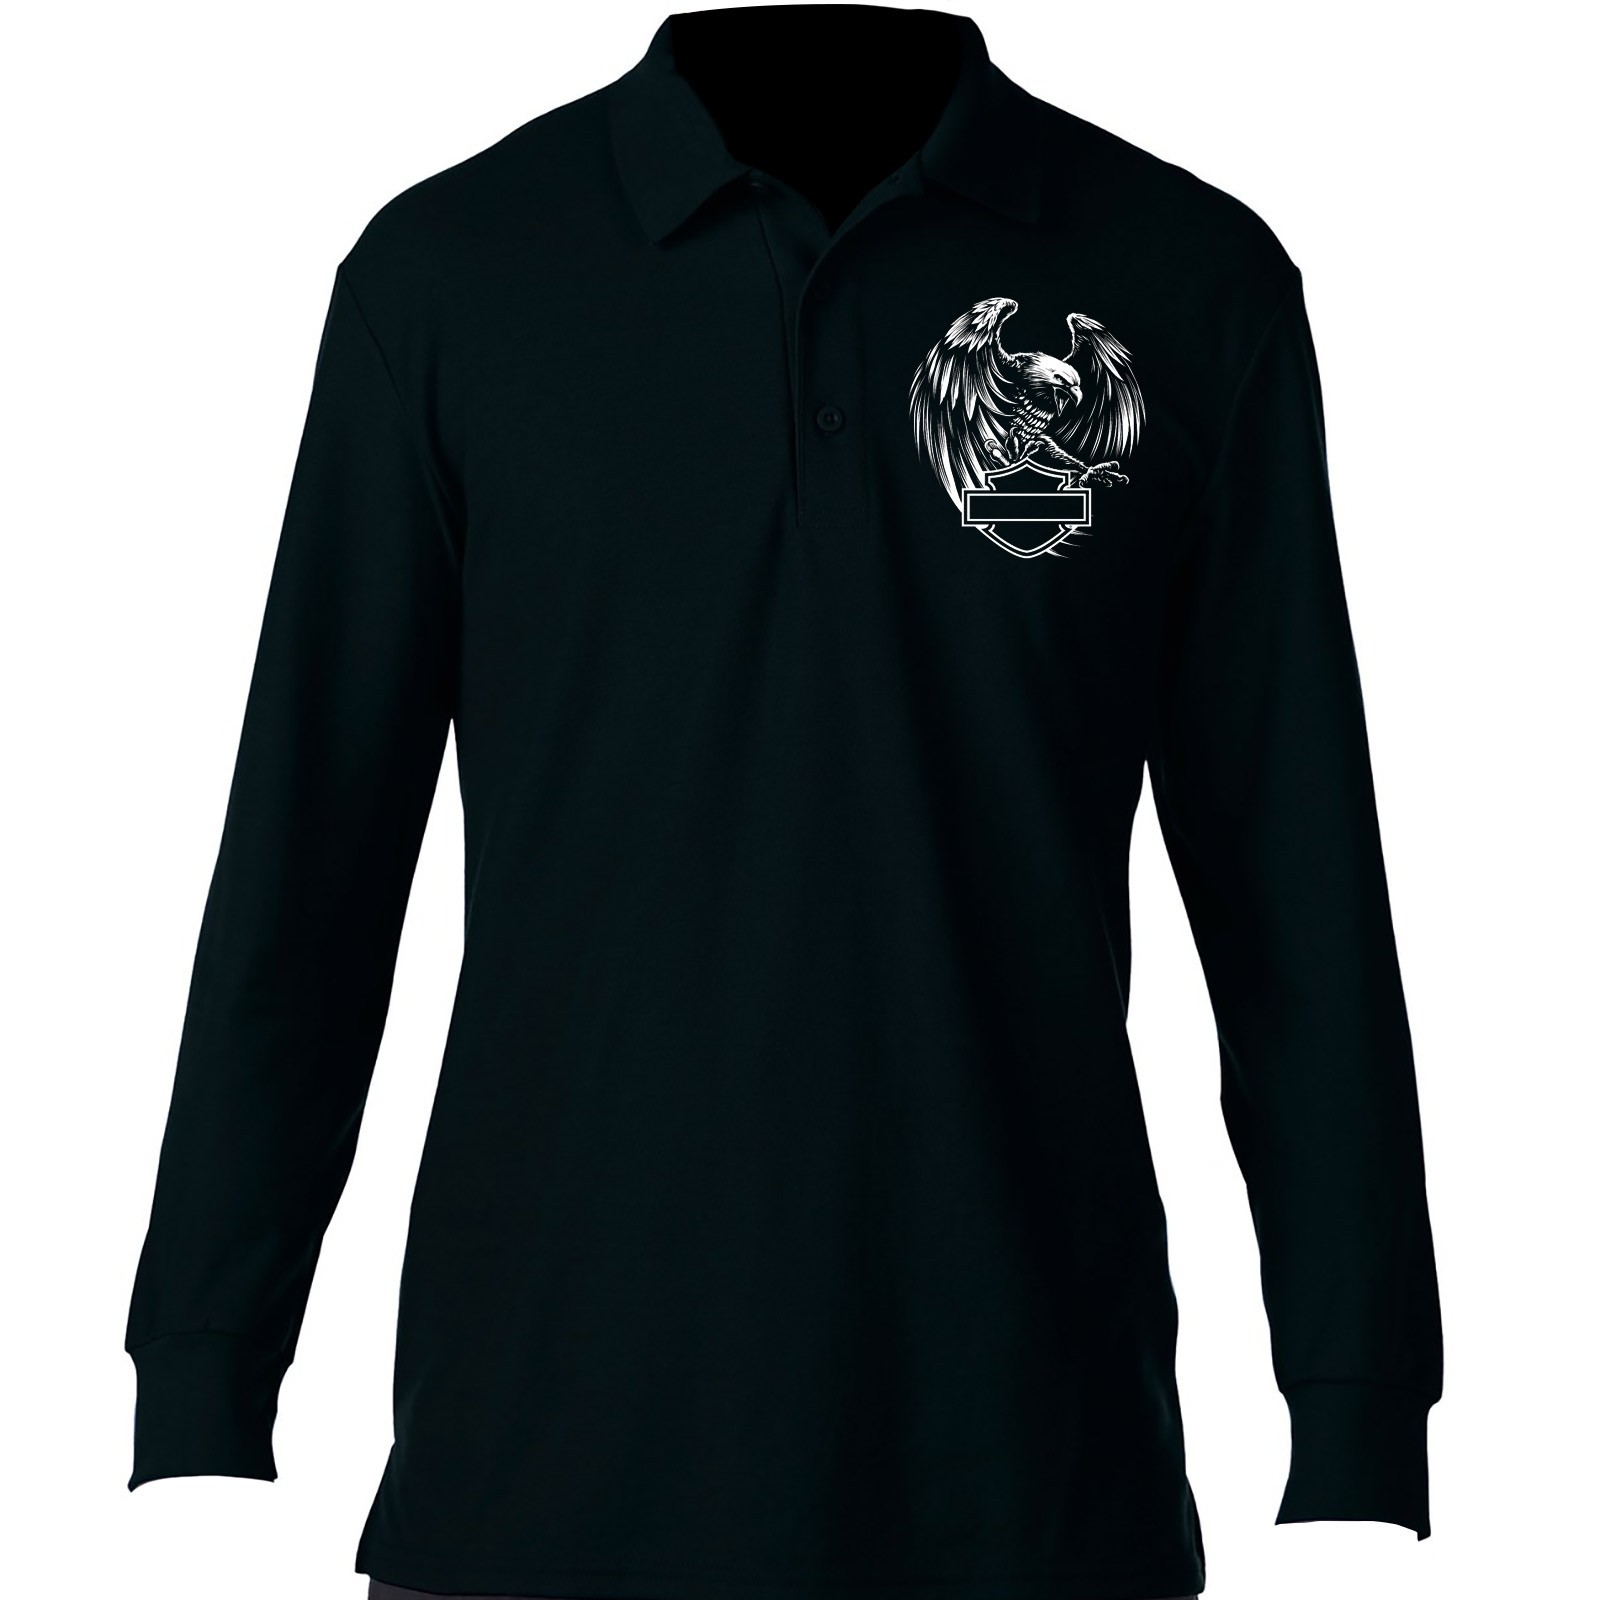 c410c243cca6 Harley-Davidson Men s Long-Sleeve Sport Shirt - Overseas Tour ...